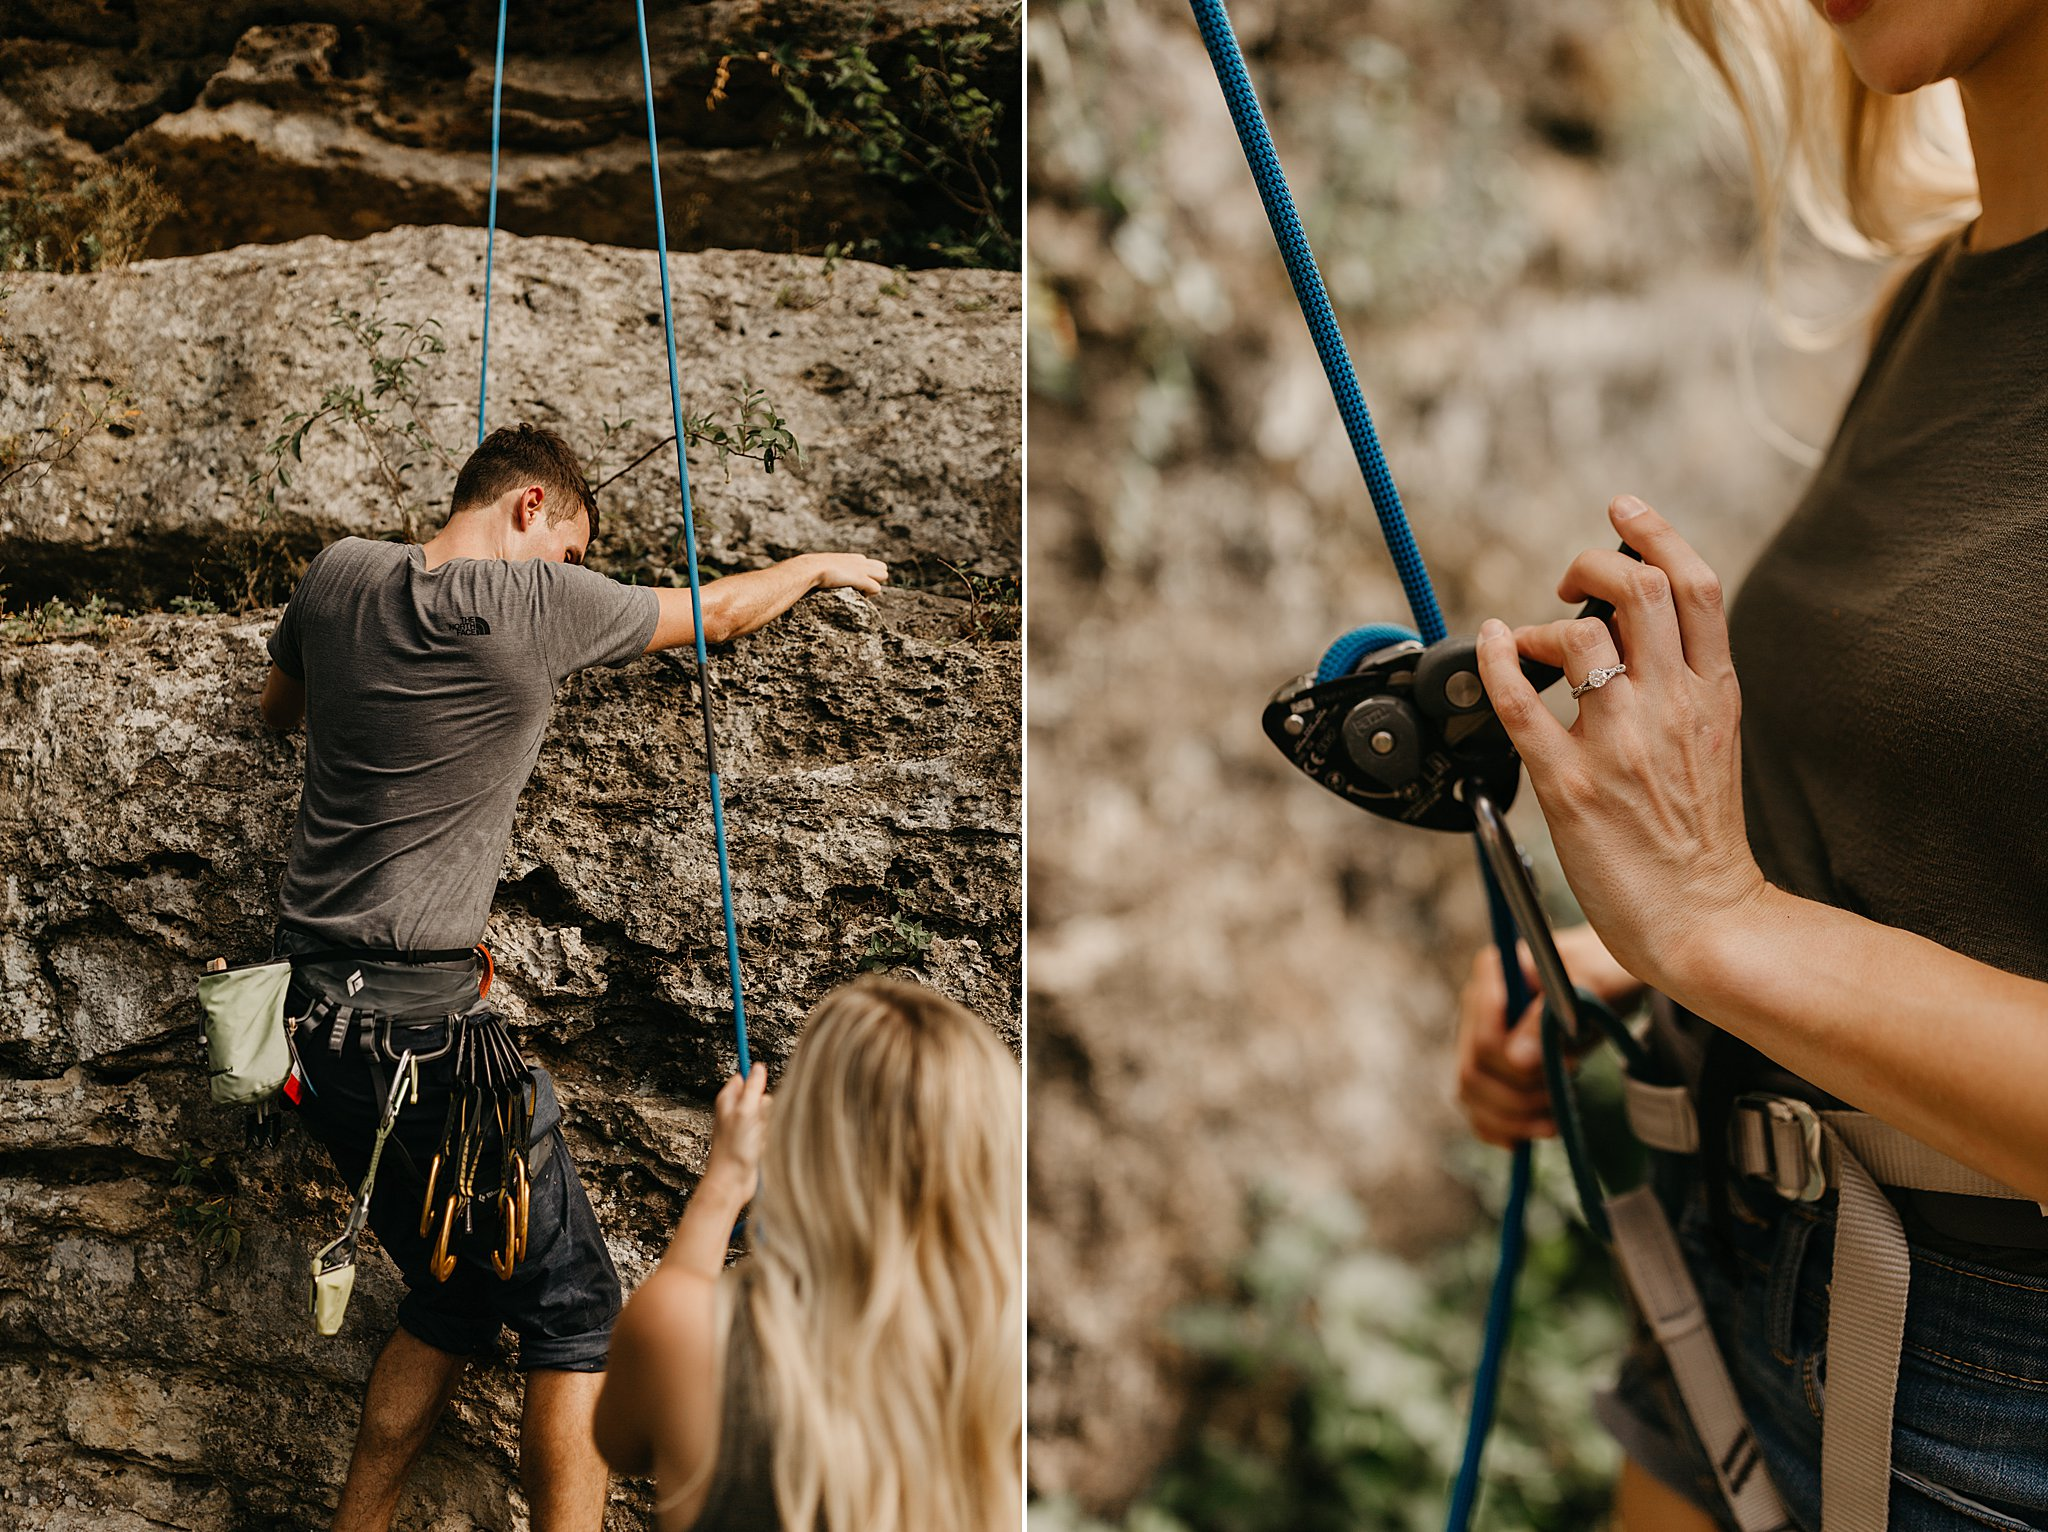 Wilderlove Co_Wedding Photographer_Dripping Springs Photography_Adventure Engagemenet_Rock Climbing Engagement_Hill Country Photographer_North Texas Photographer_0009.jpg